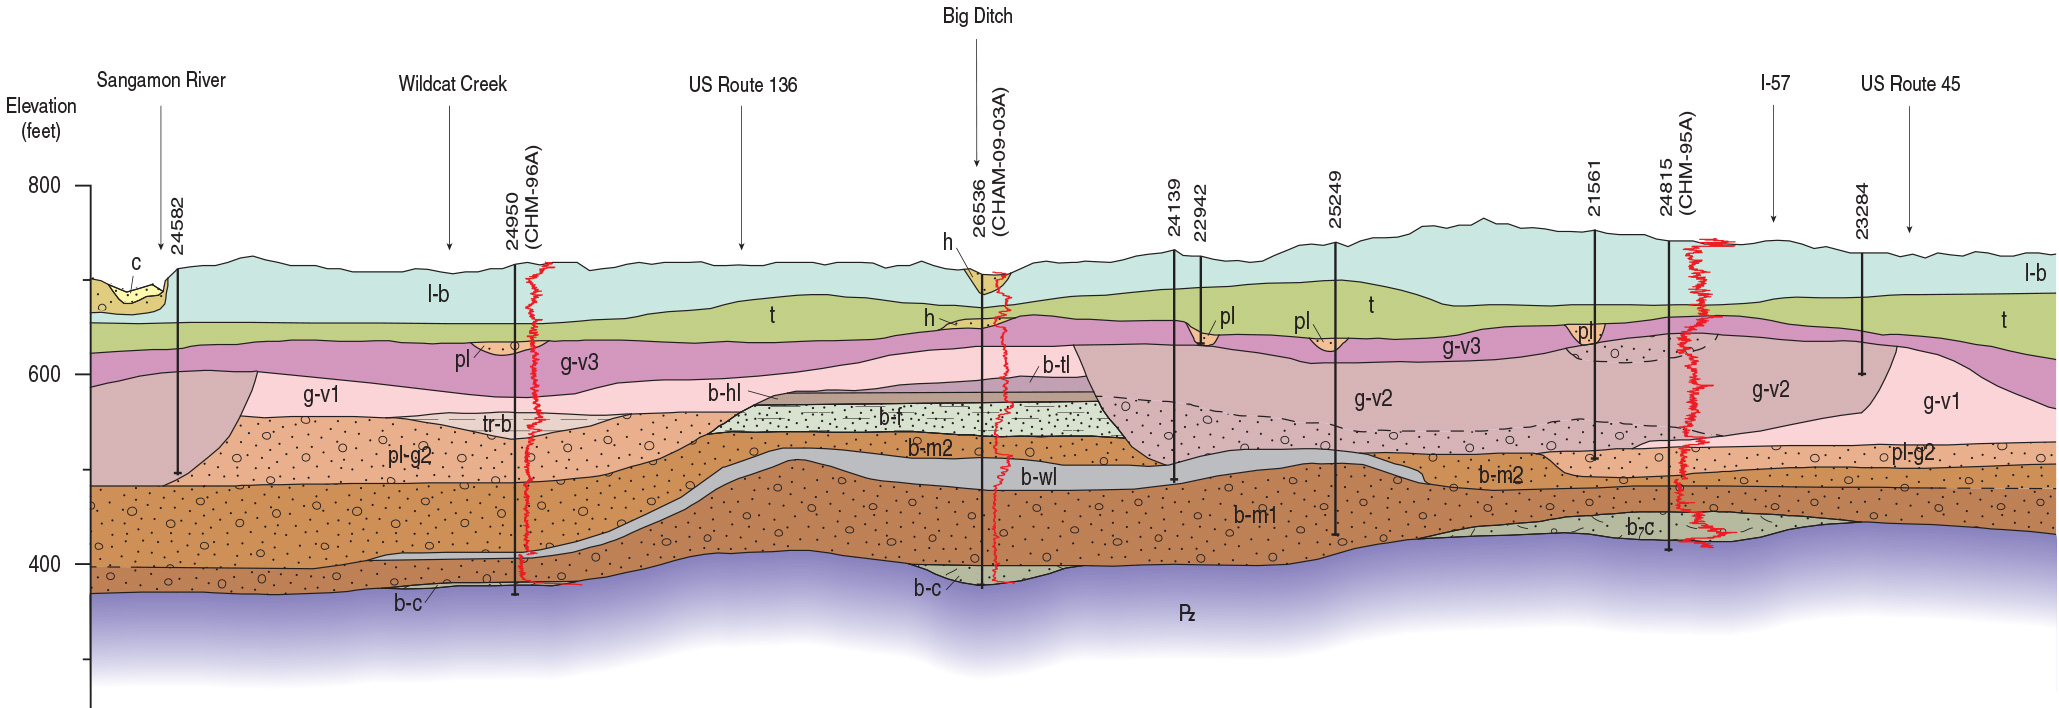 Illinois State Geological Survey Map Of Geologic Cross Sections - Illinois state geological survey